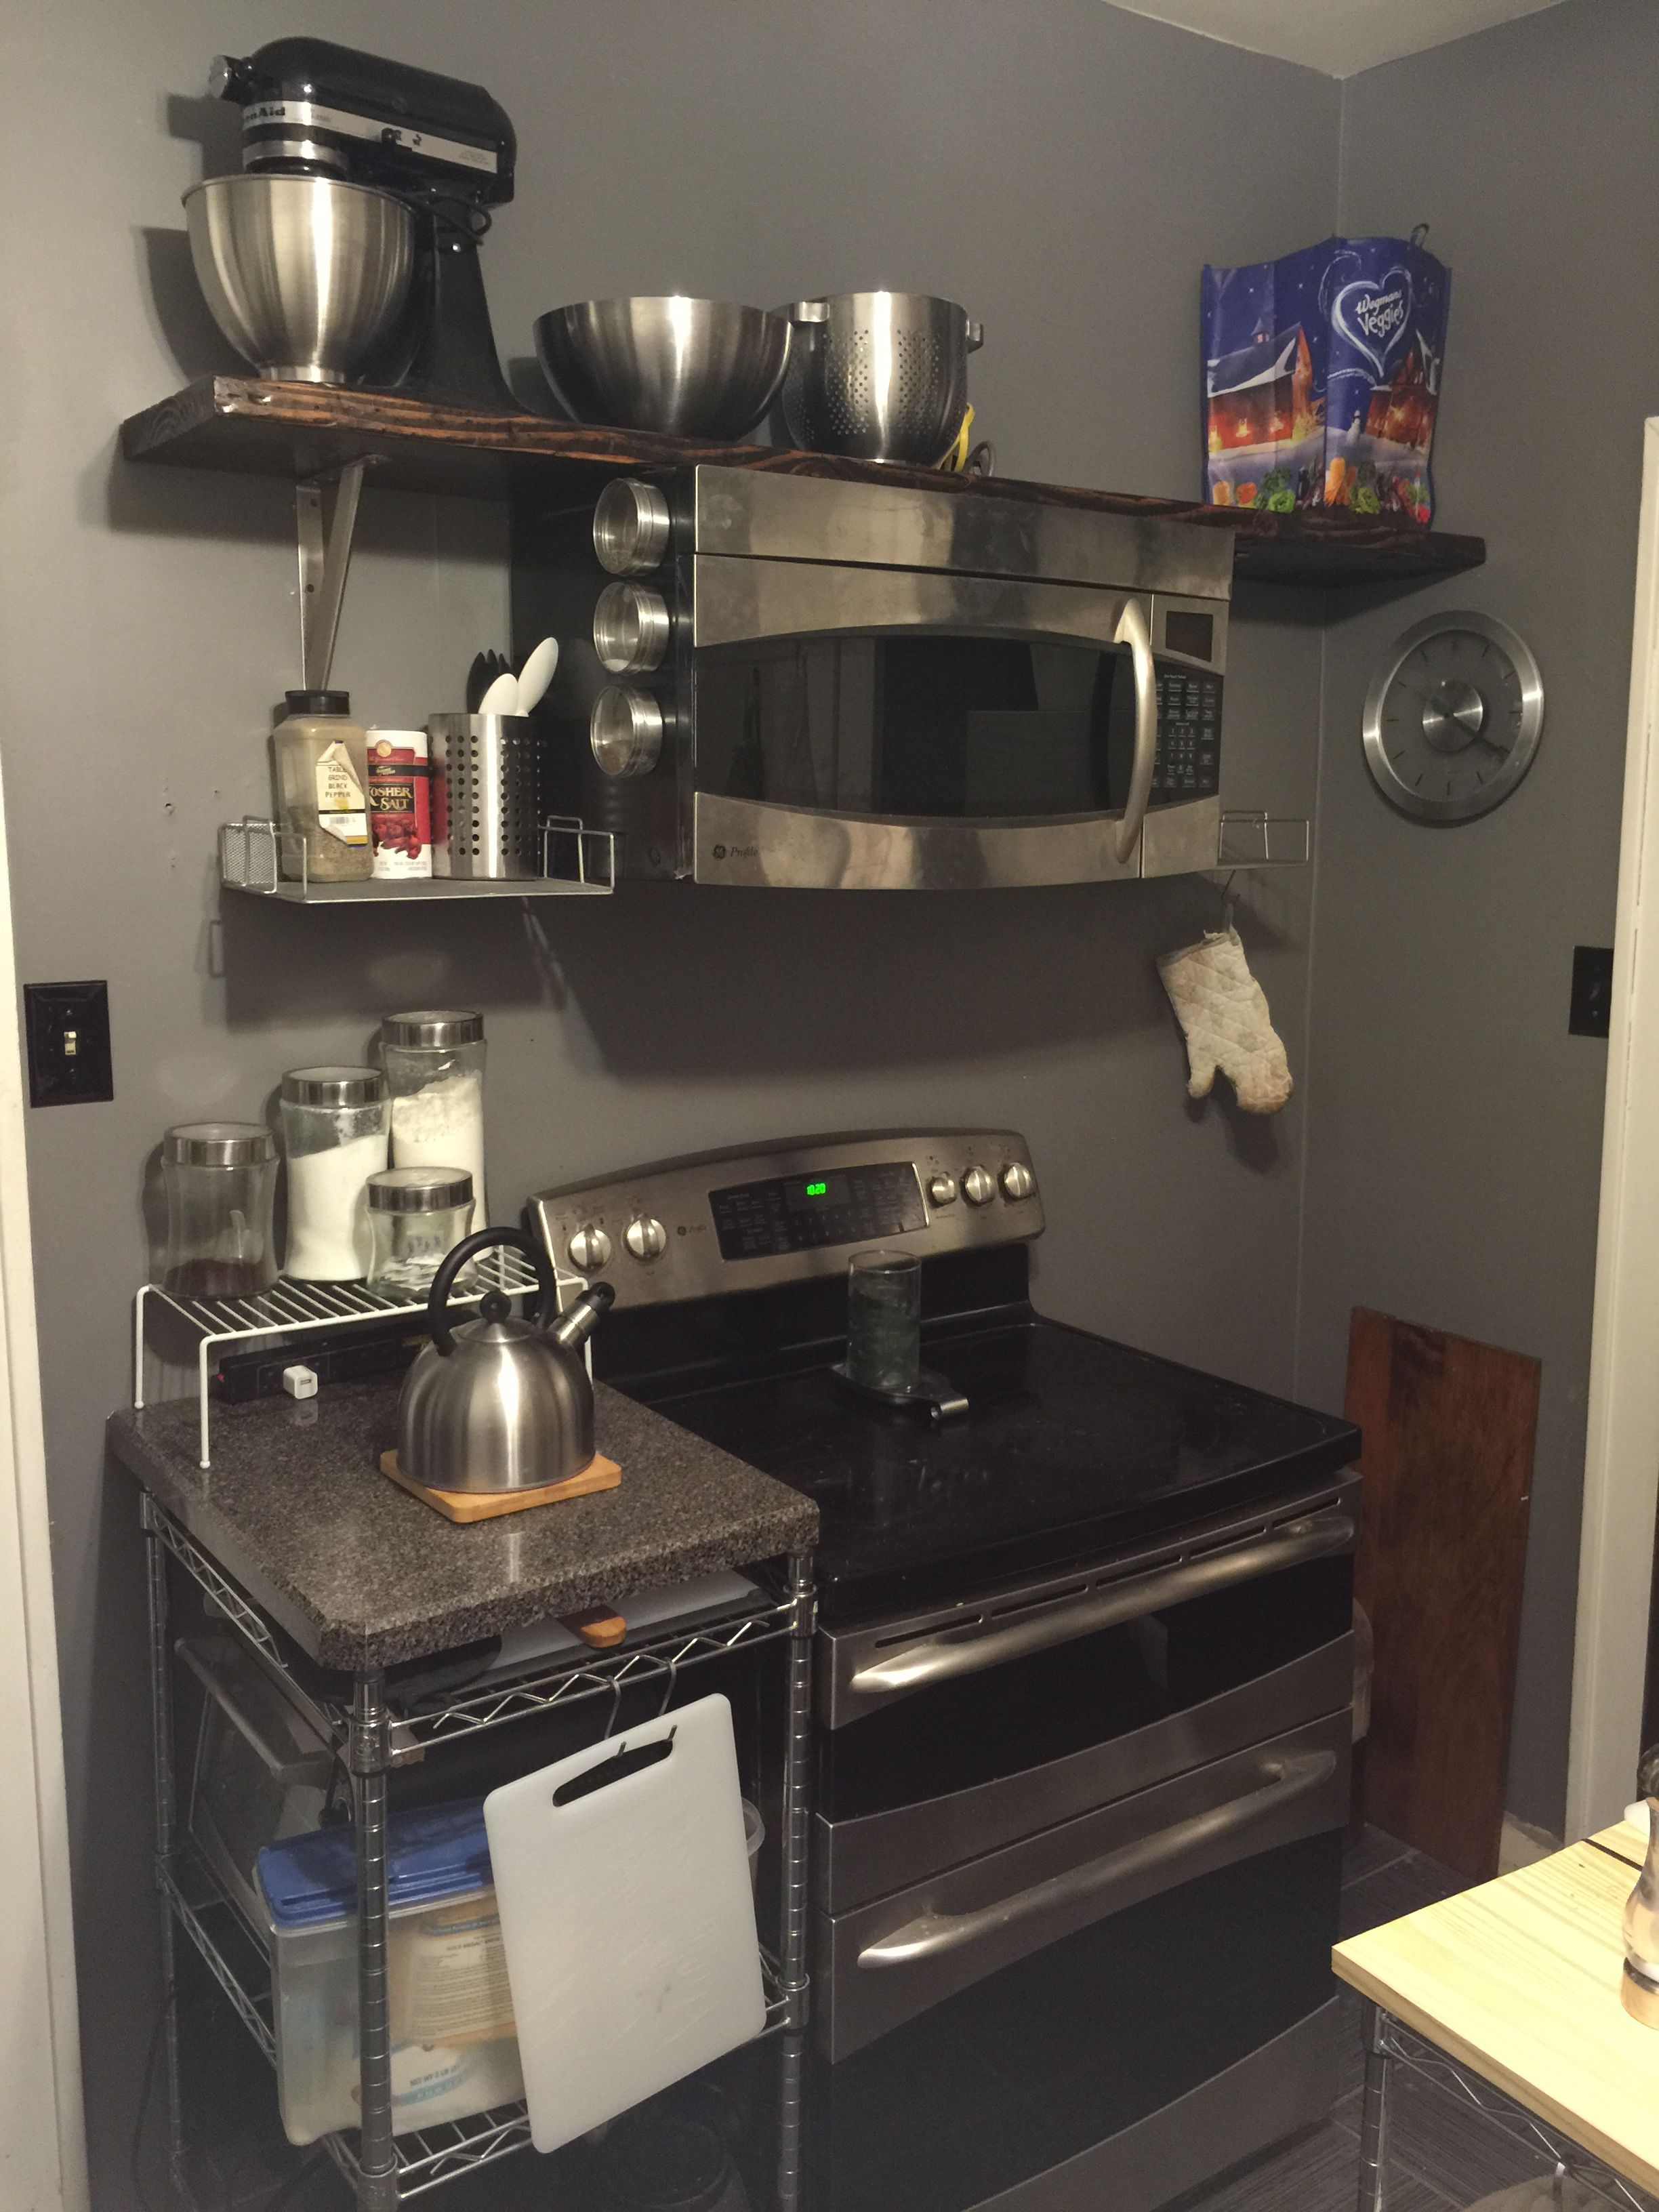 Open Shelf Instead Of Cupboard Above Stove Microwave Mounted To Shelf Metal Rack Instead Floating Shelves Kitchen Microwave Shelf Microwave Shelf Over Stove